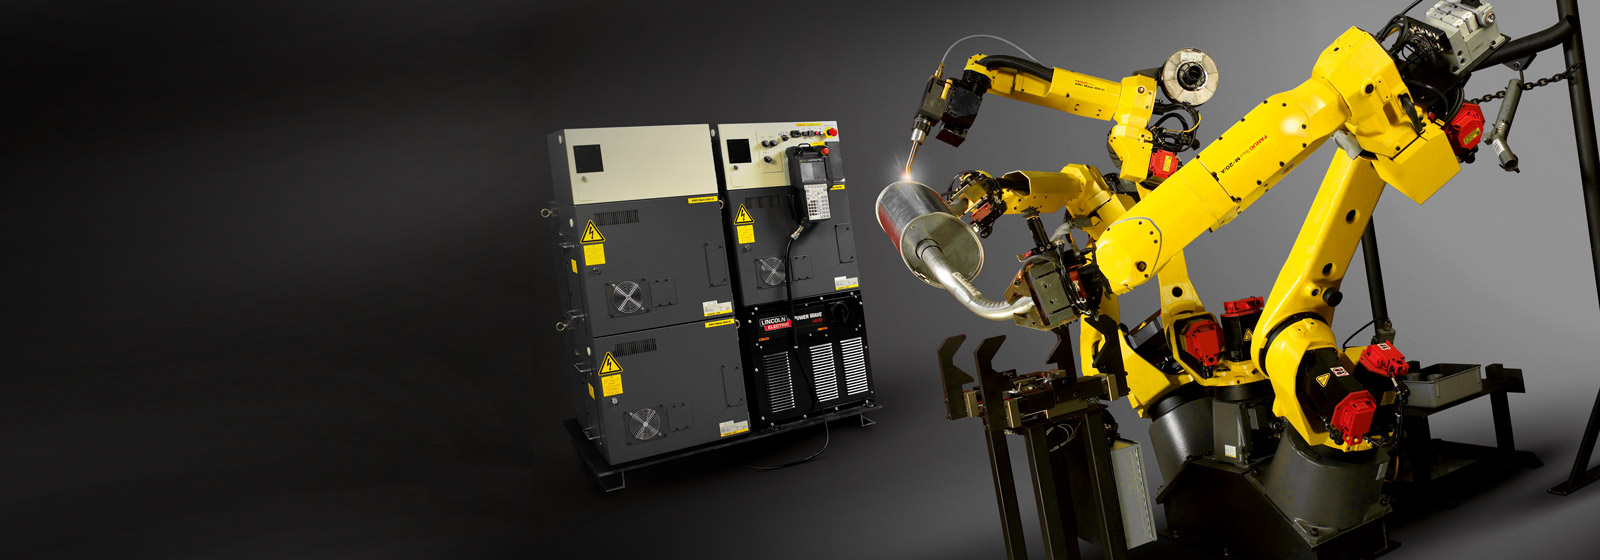 Three welding robots and control units